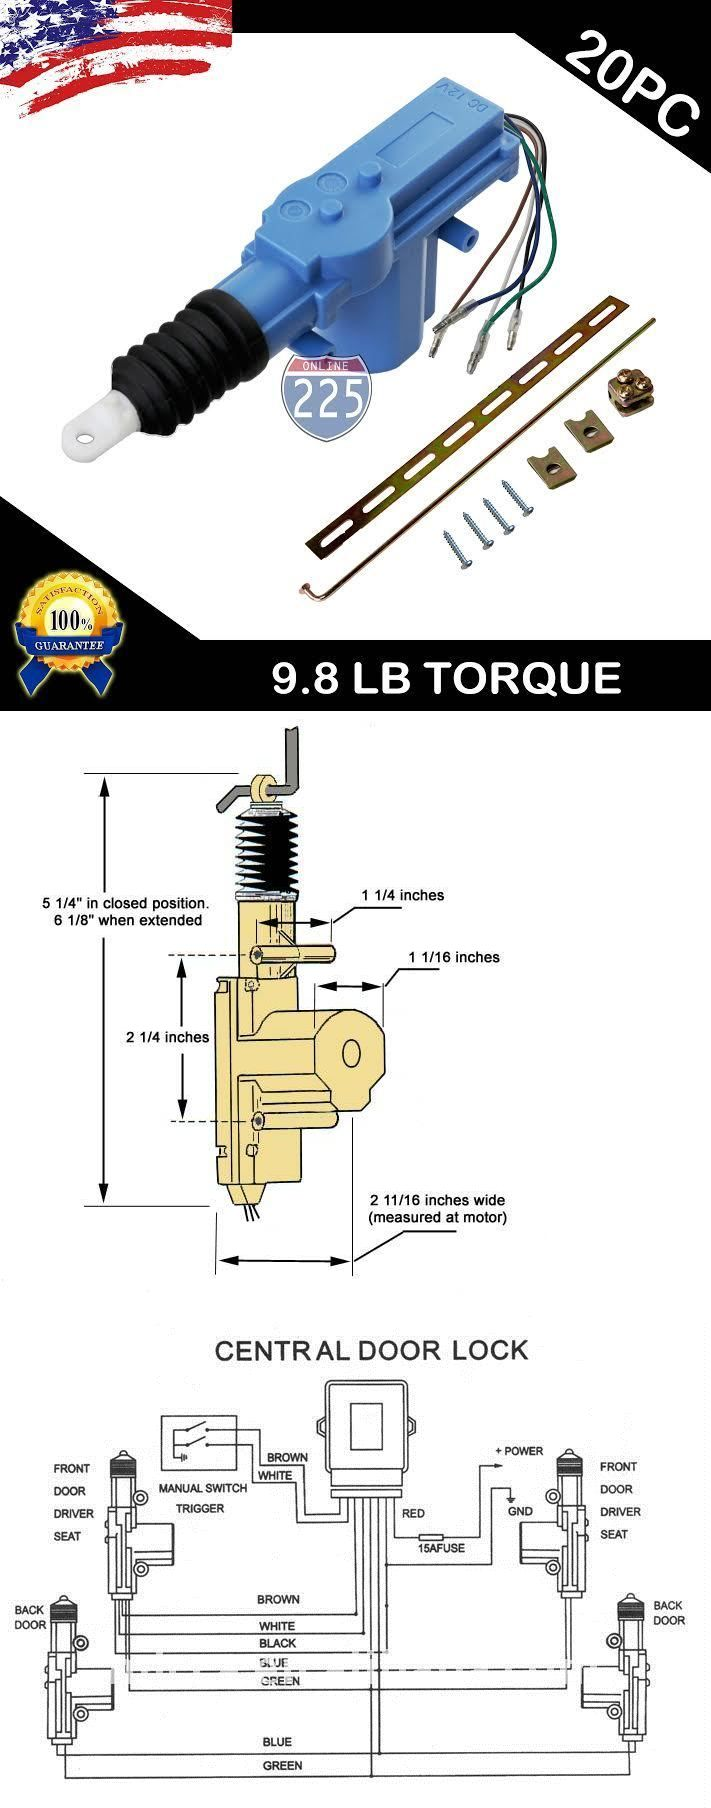 58 best wiring diagram images on pinterest car stuff electric and other car alarms and security 20x new universal power door lock actuator motor 5 wire fandeluxe Gallery